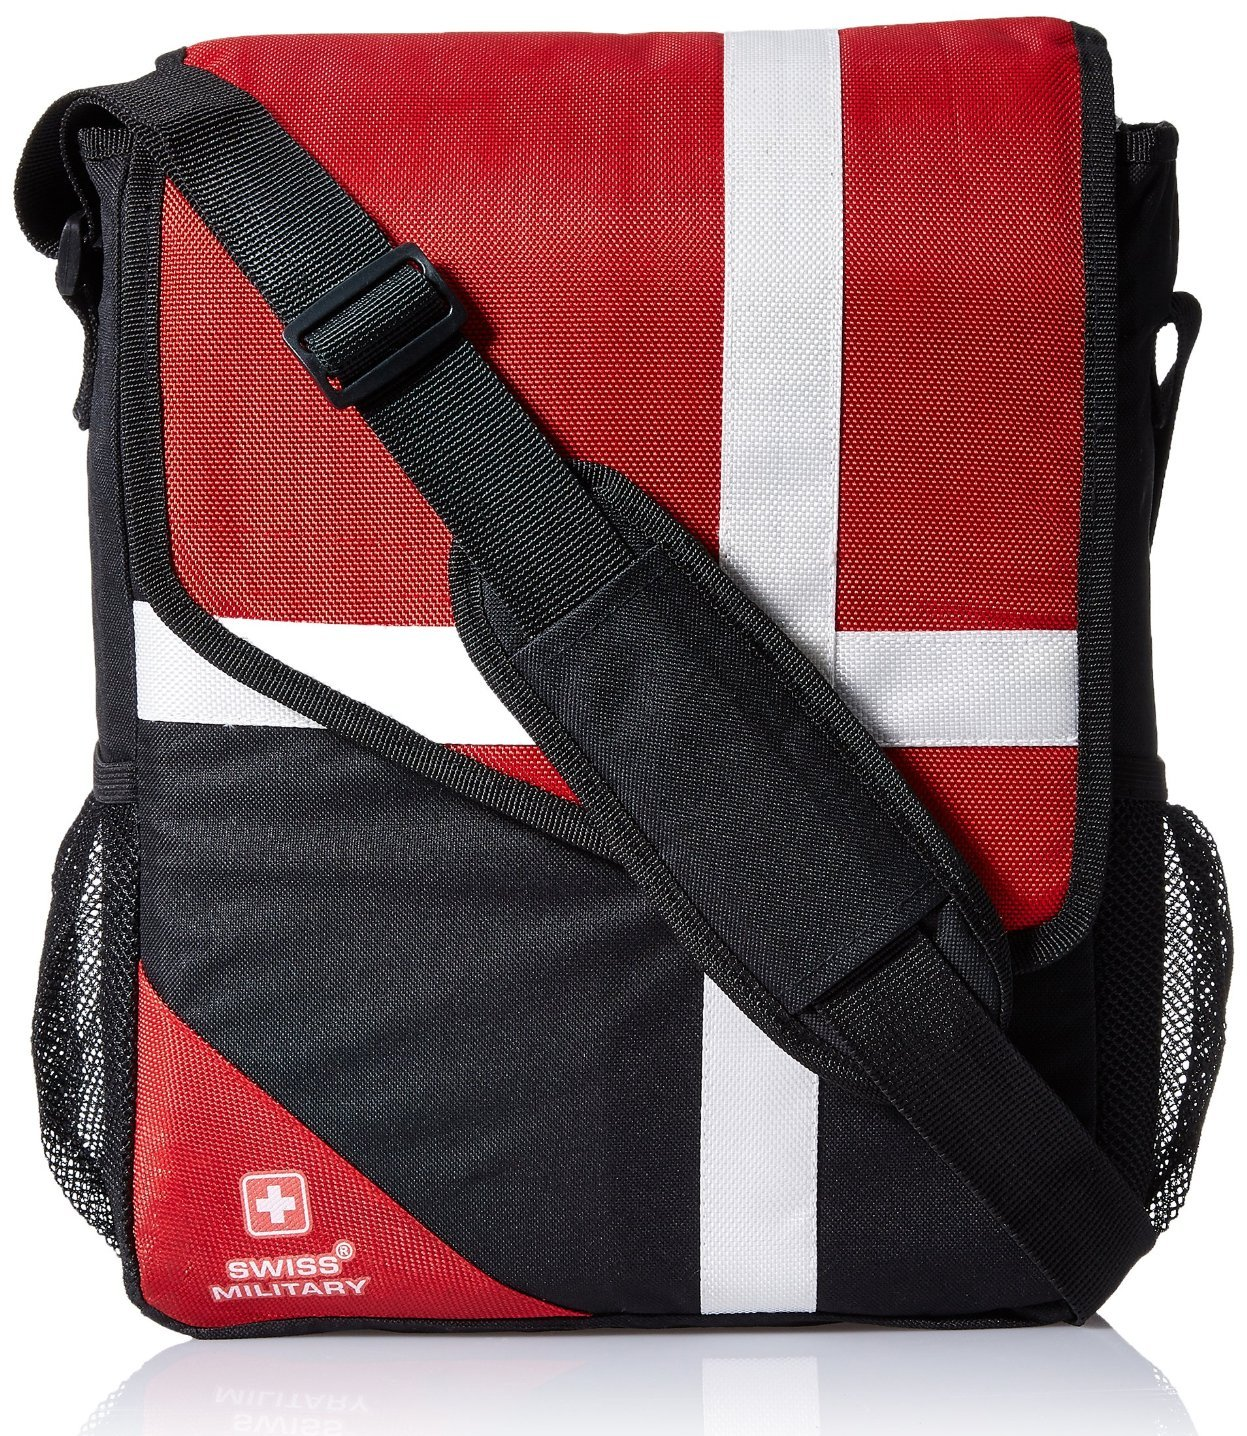 Swiss Military Messenger Sling Bag in Bangalore